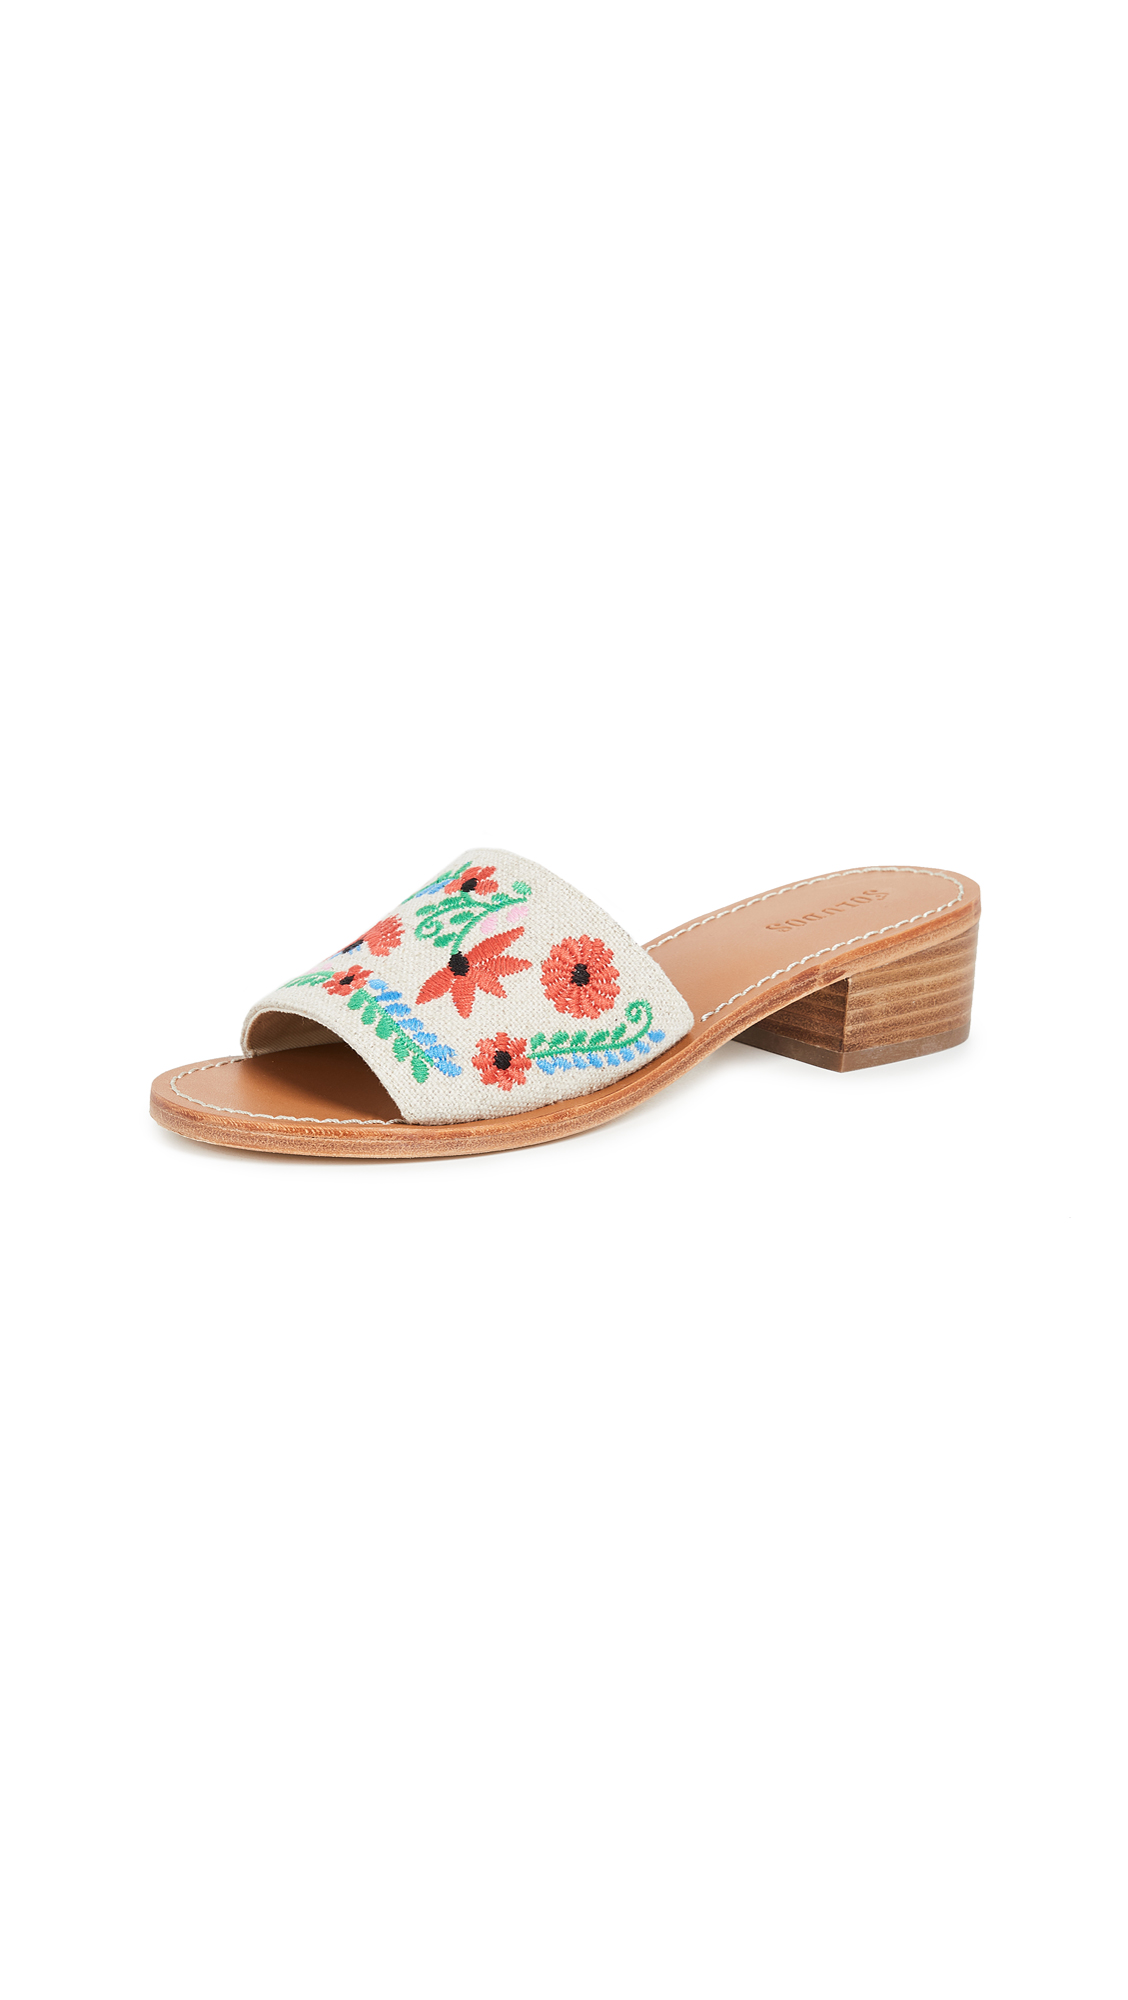 IBIZA EMBROIDERED CITY SANDALS